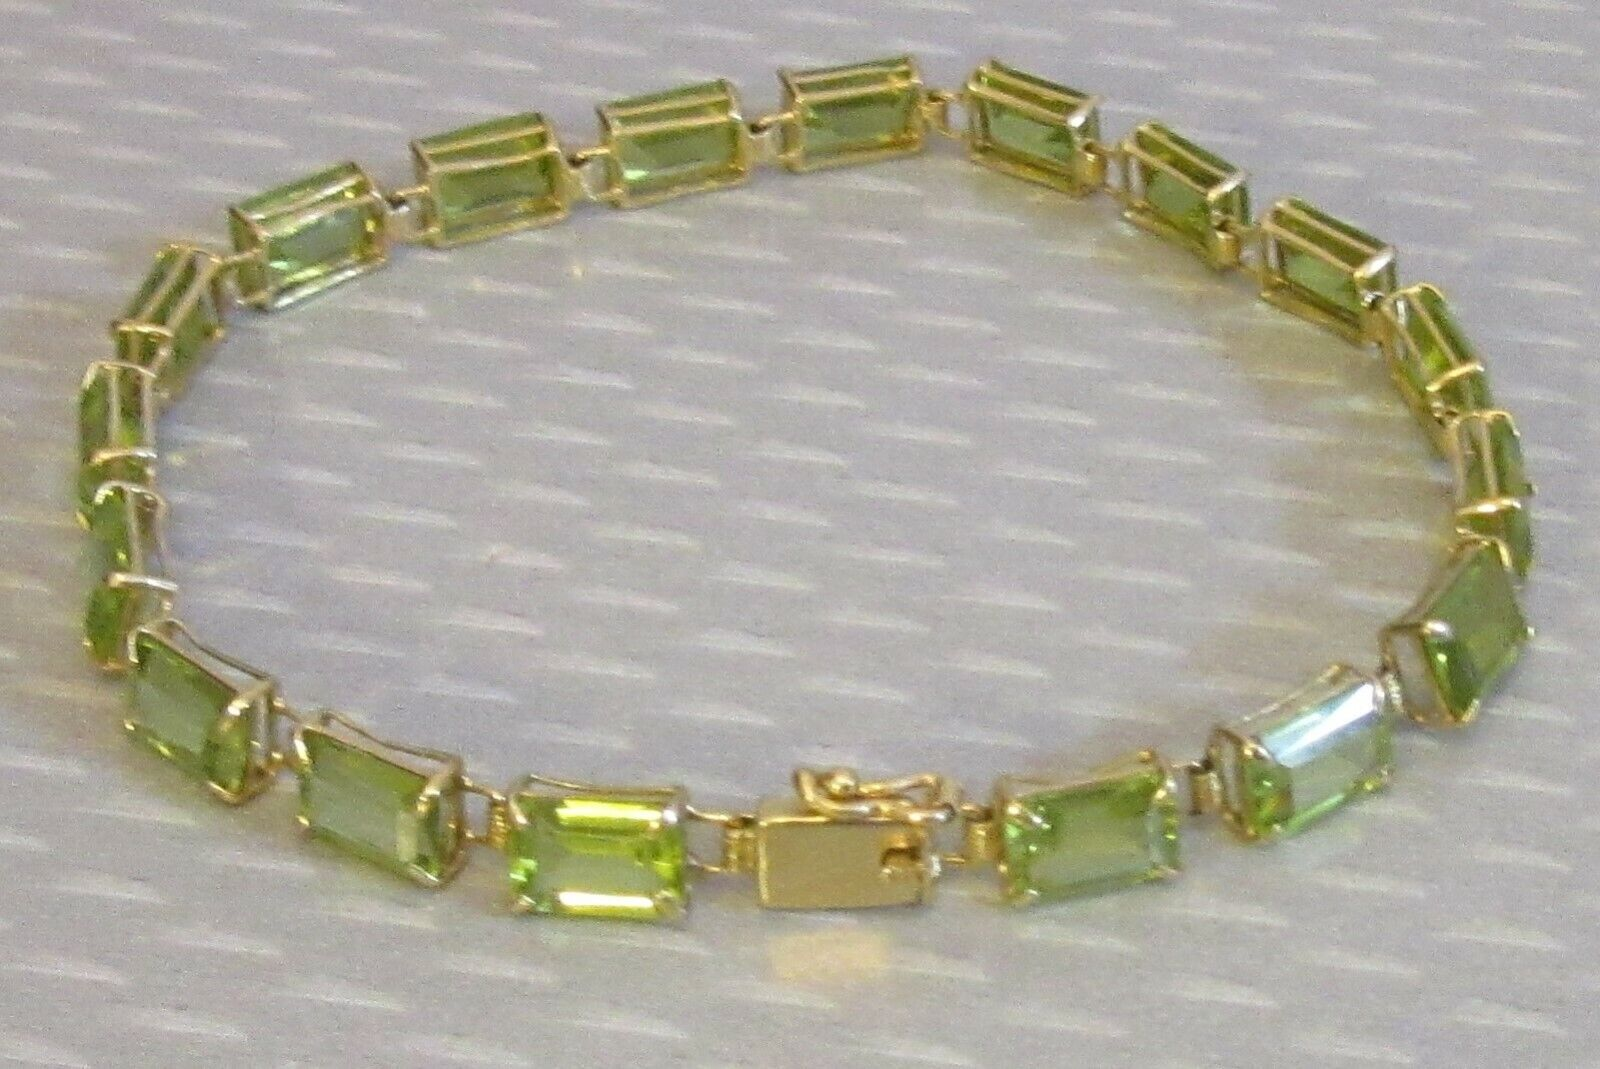 14K yellow gold PERIDOT TENNIS LINE BRACELET 12ct emerald cut green gems 7